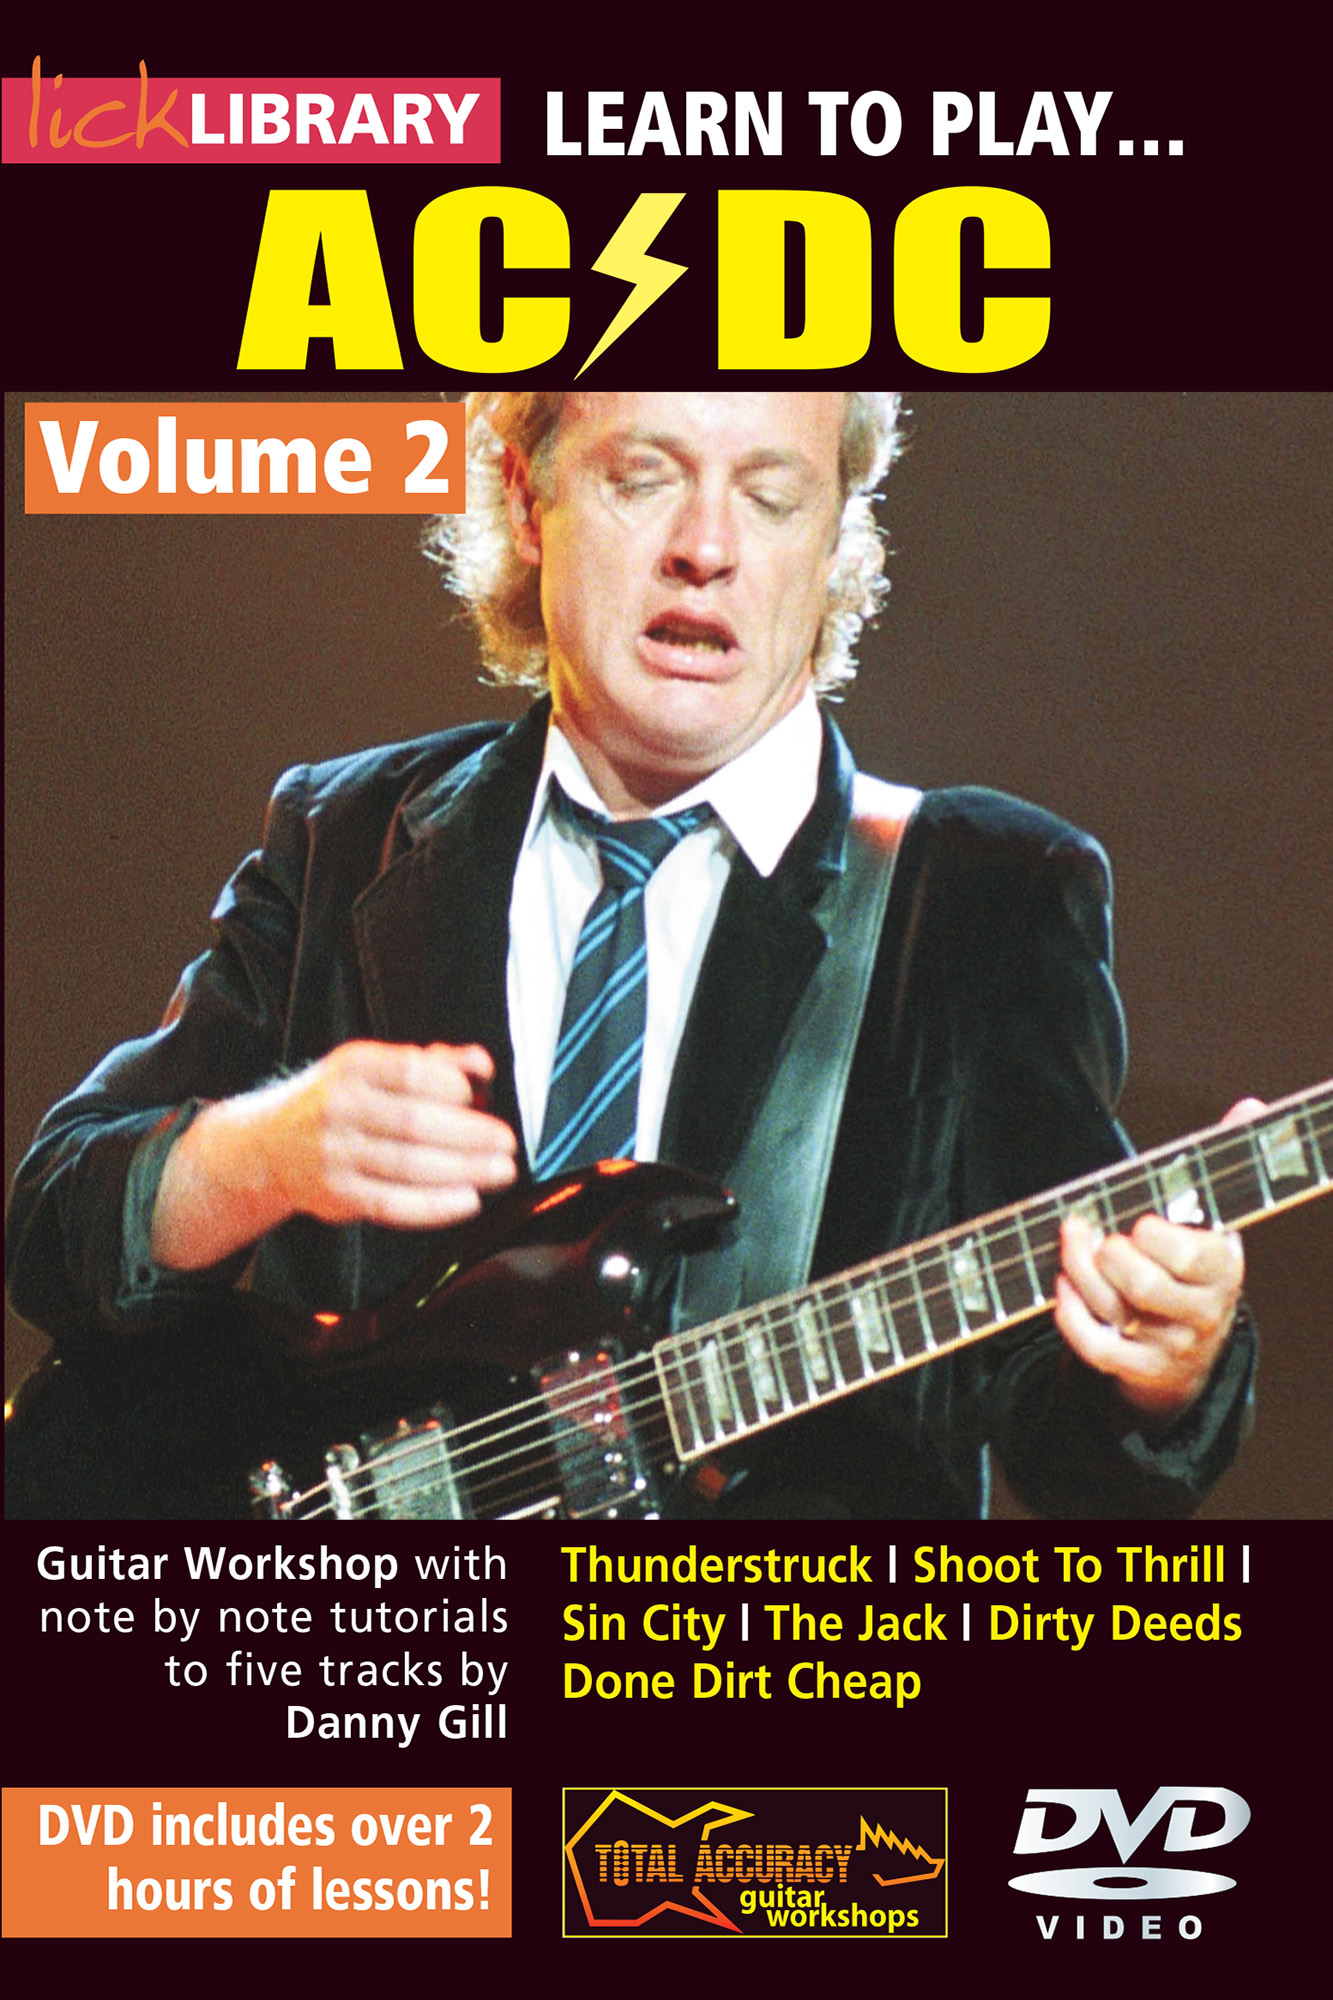 Learn To Play AC/DC Volume 2